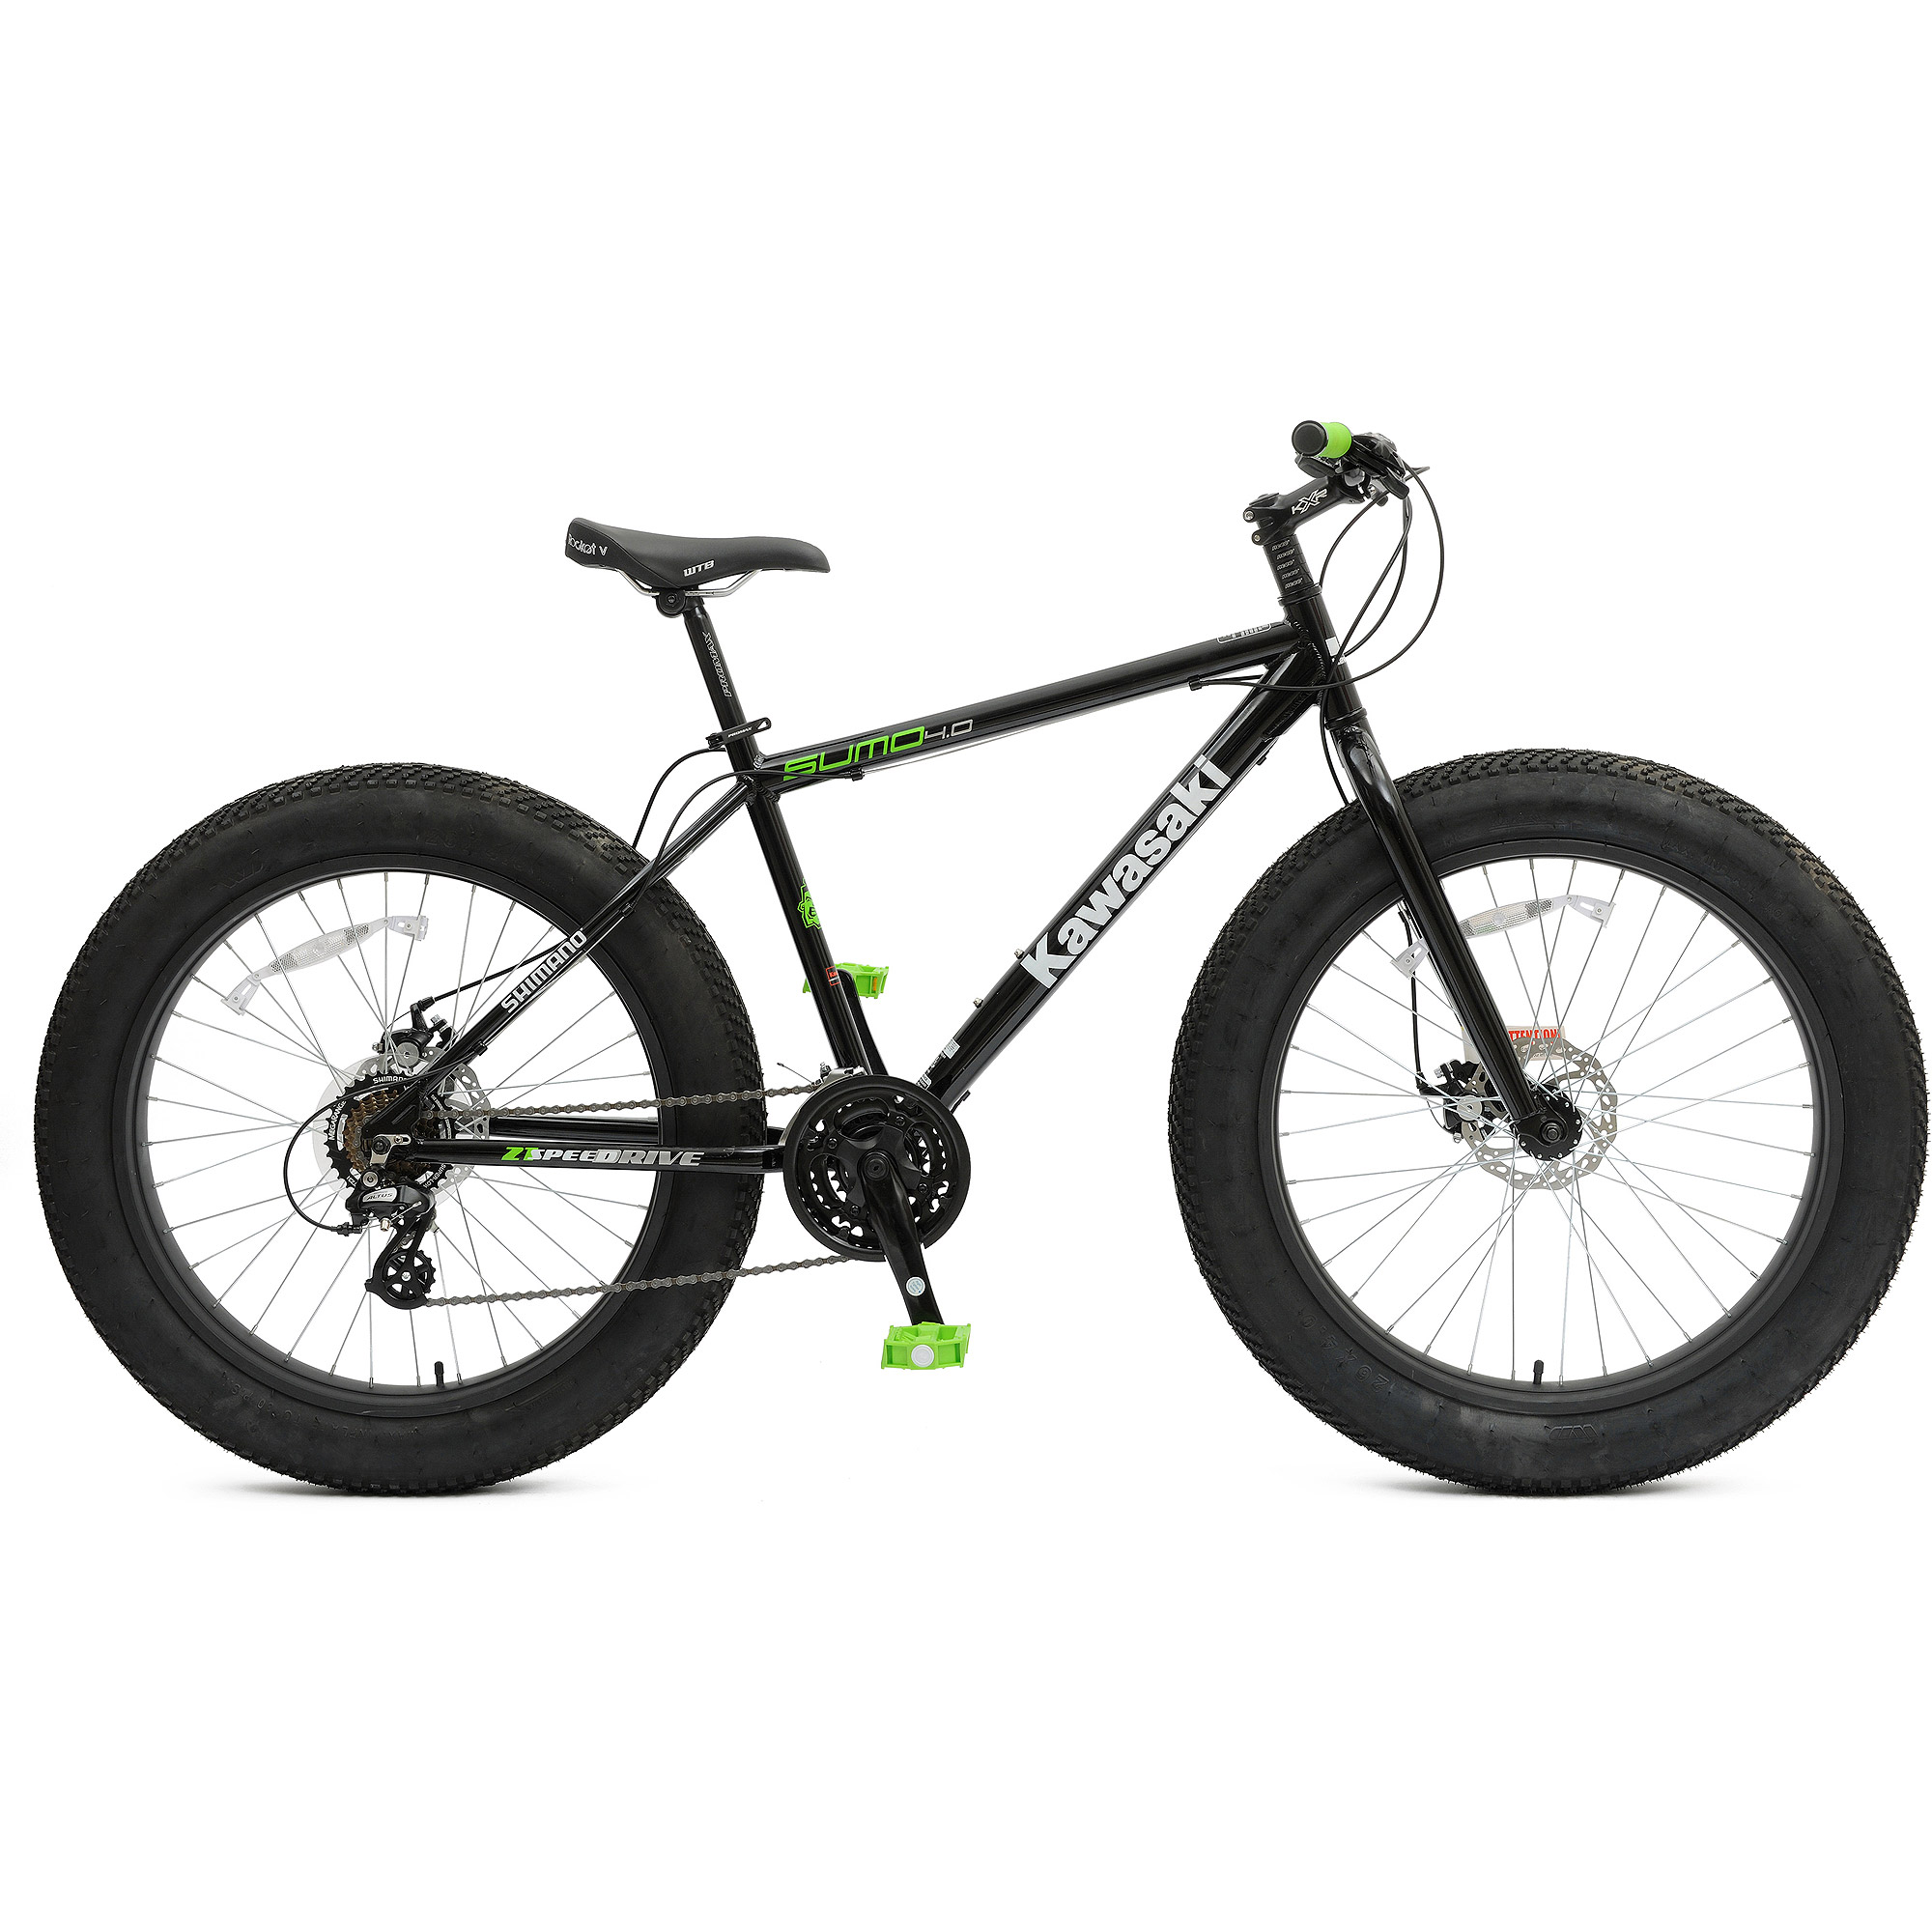 Kawasaki Sumo 4.0 Fat Tire Bicycle